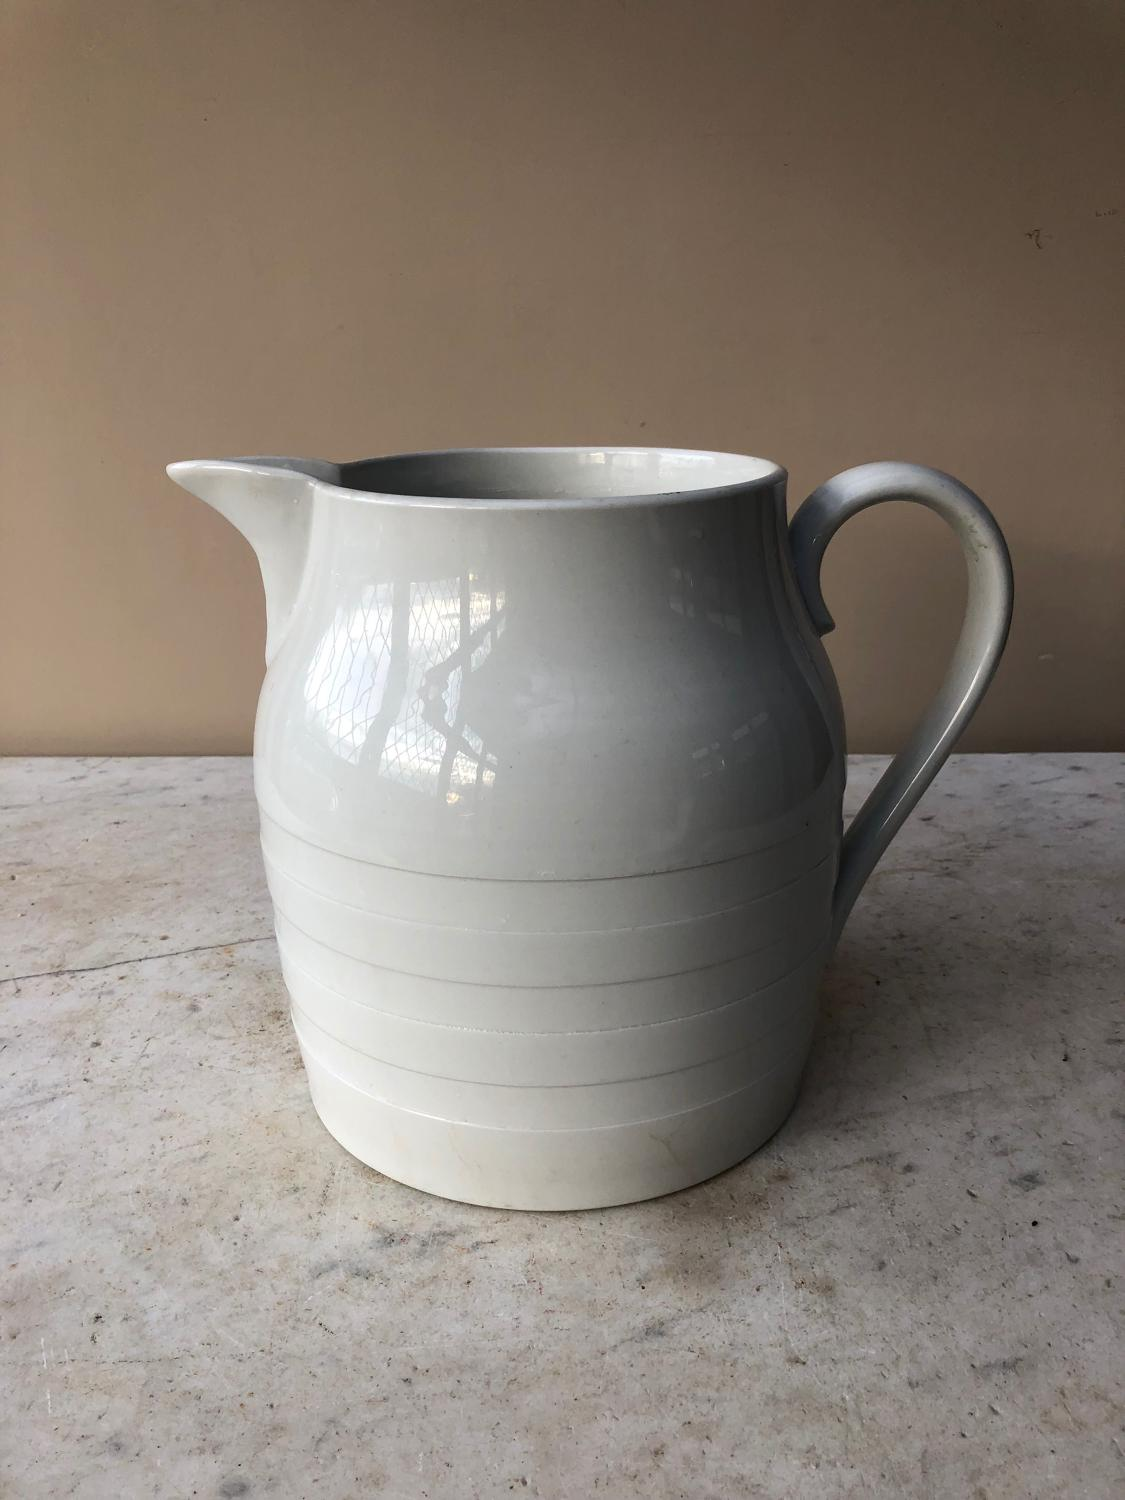 Late Victorian White Banded Dairy Milk Jug - 10 Pints